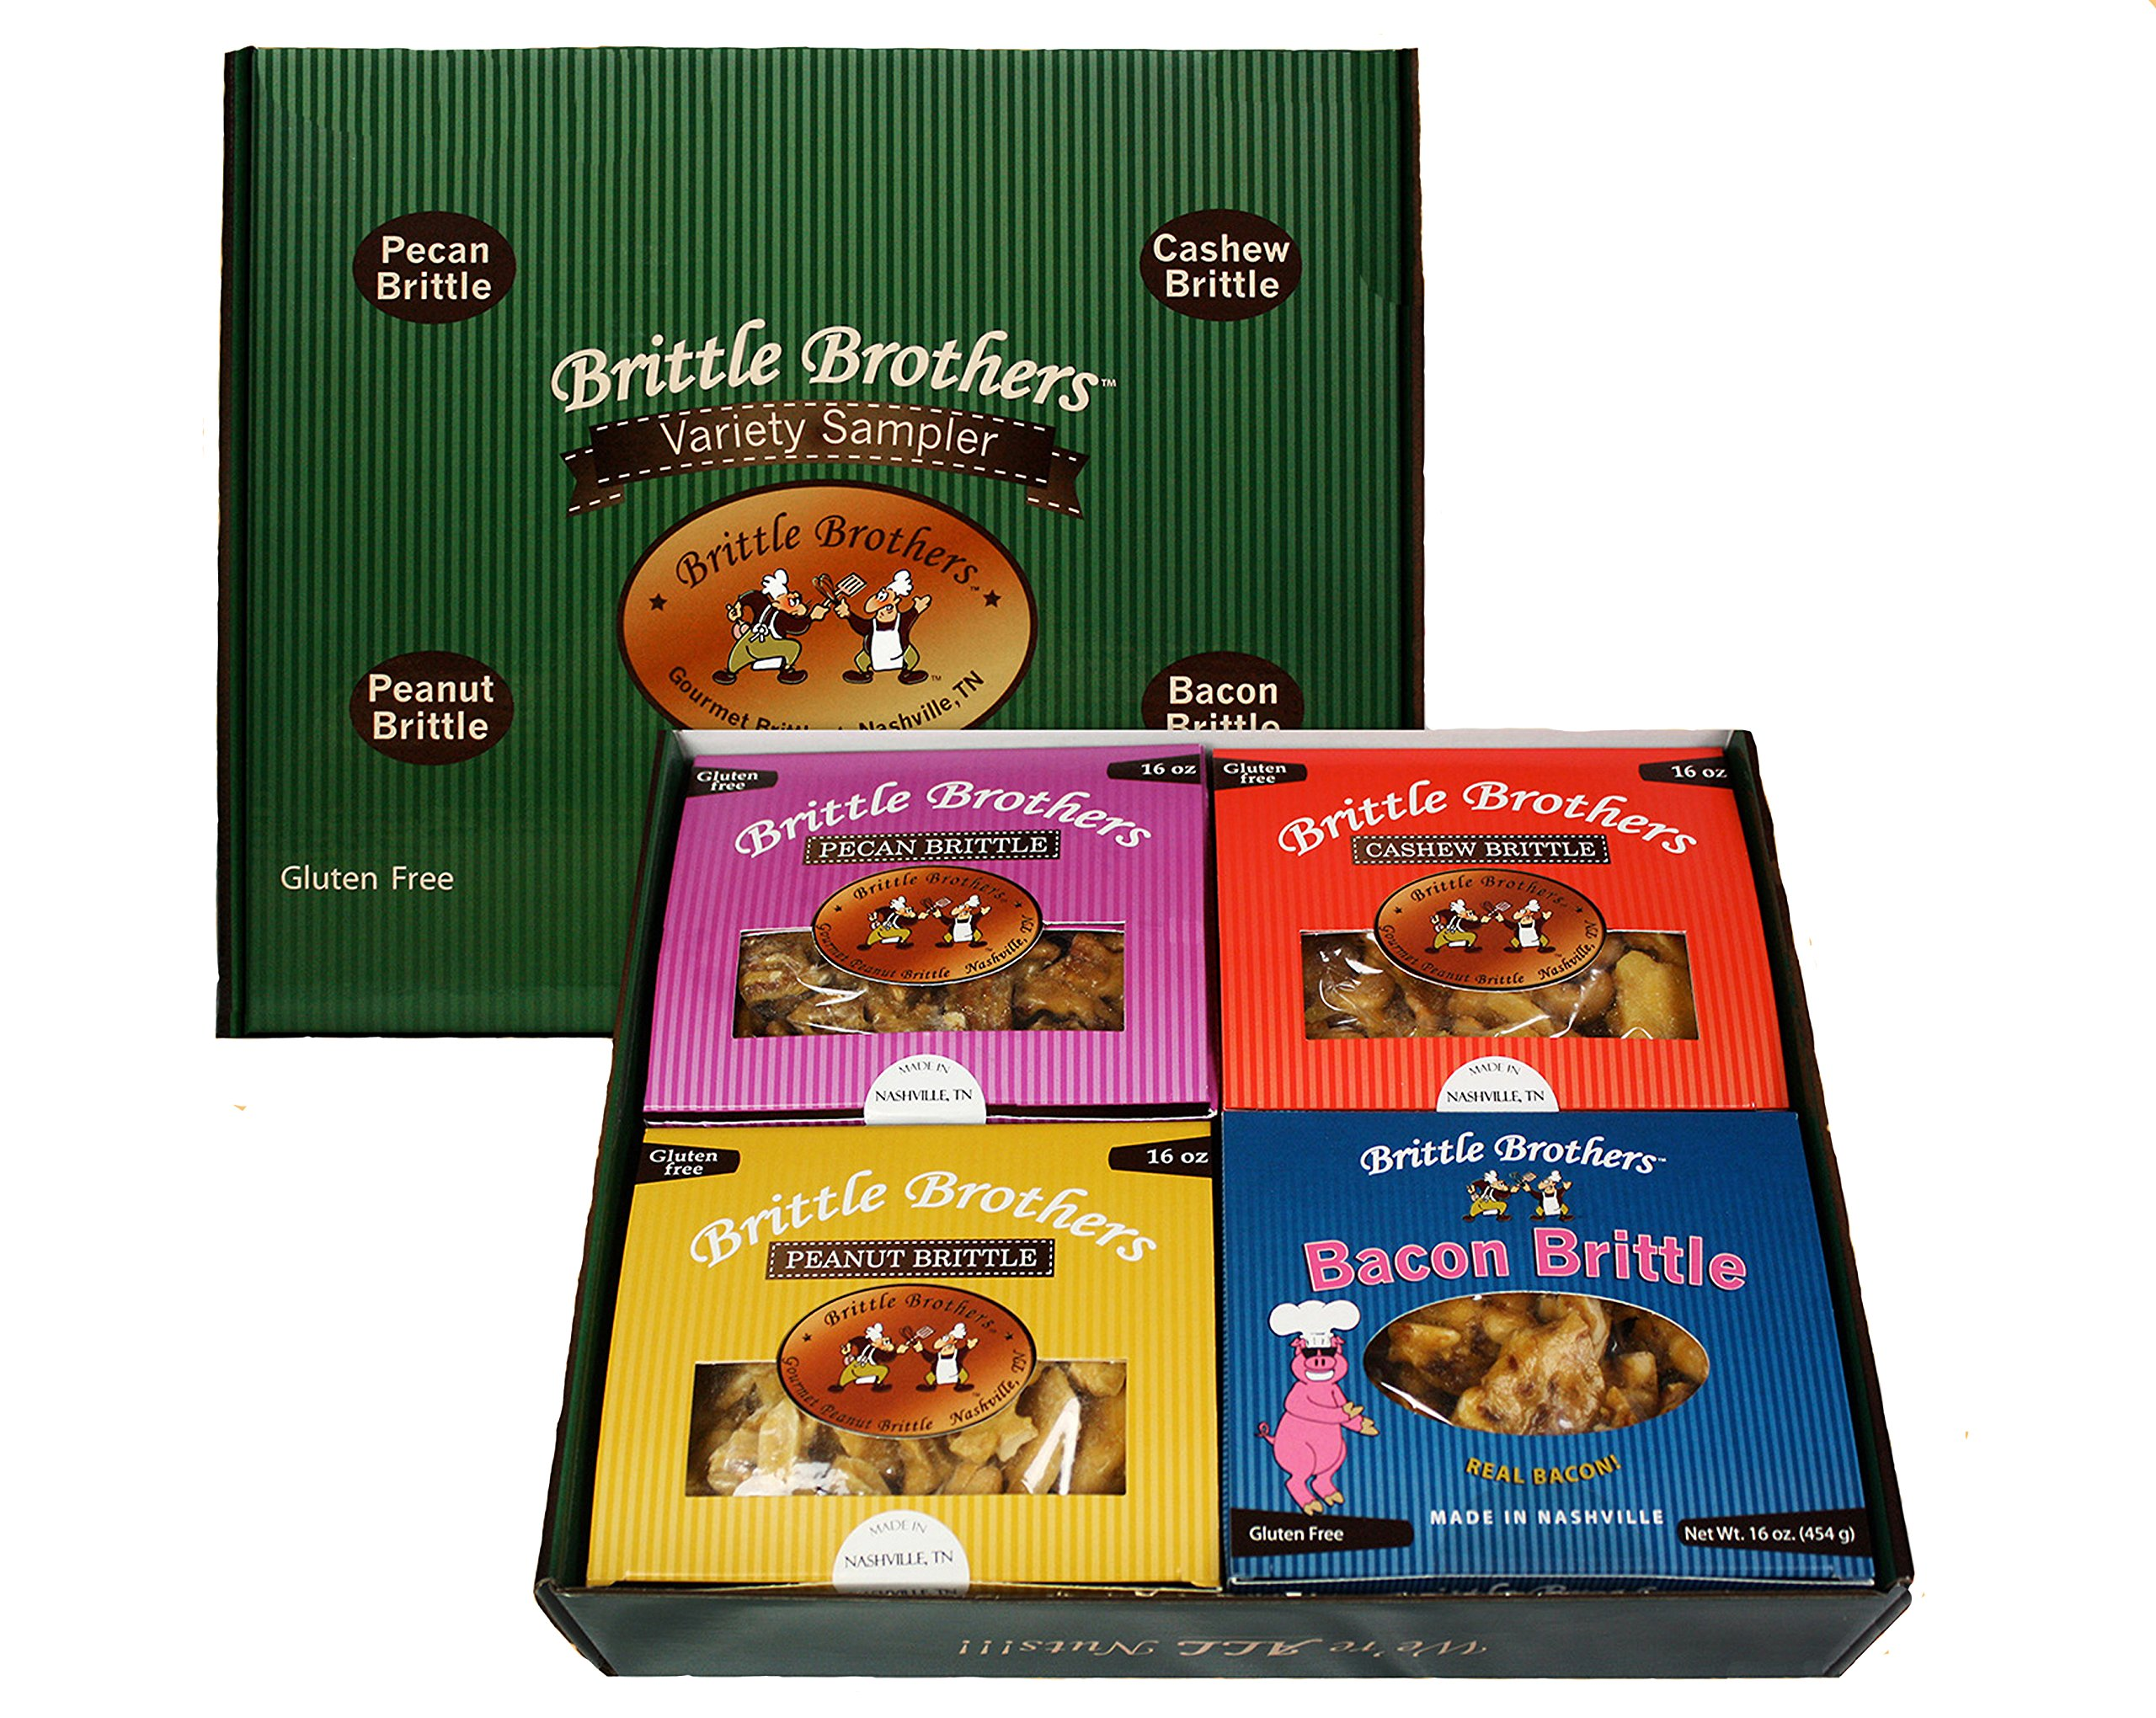 32 oz. Variety Sampler by Brittle Brother's